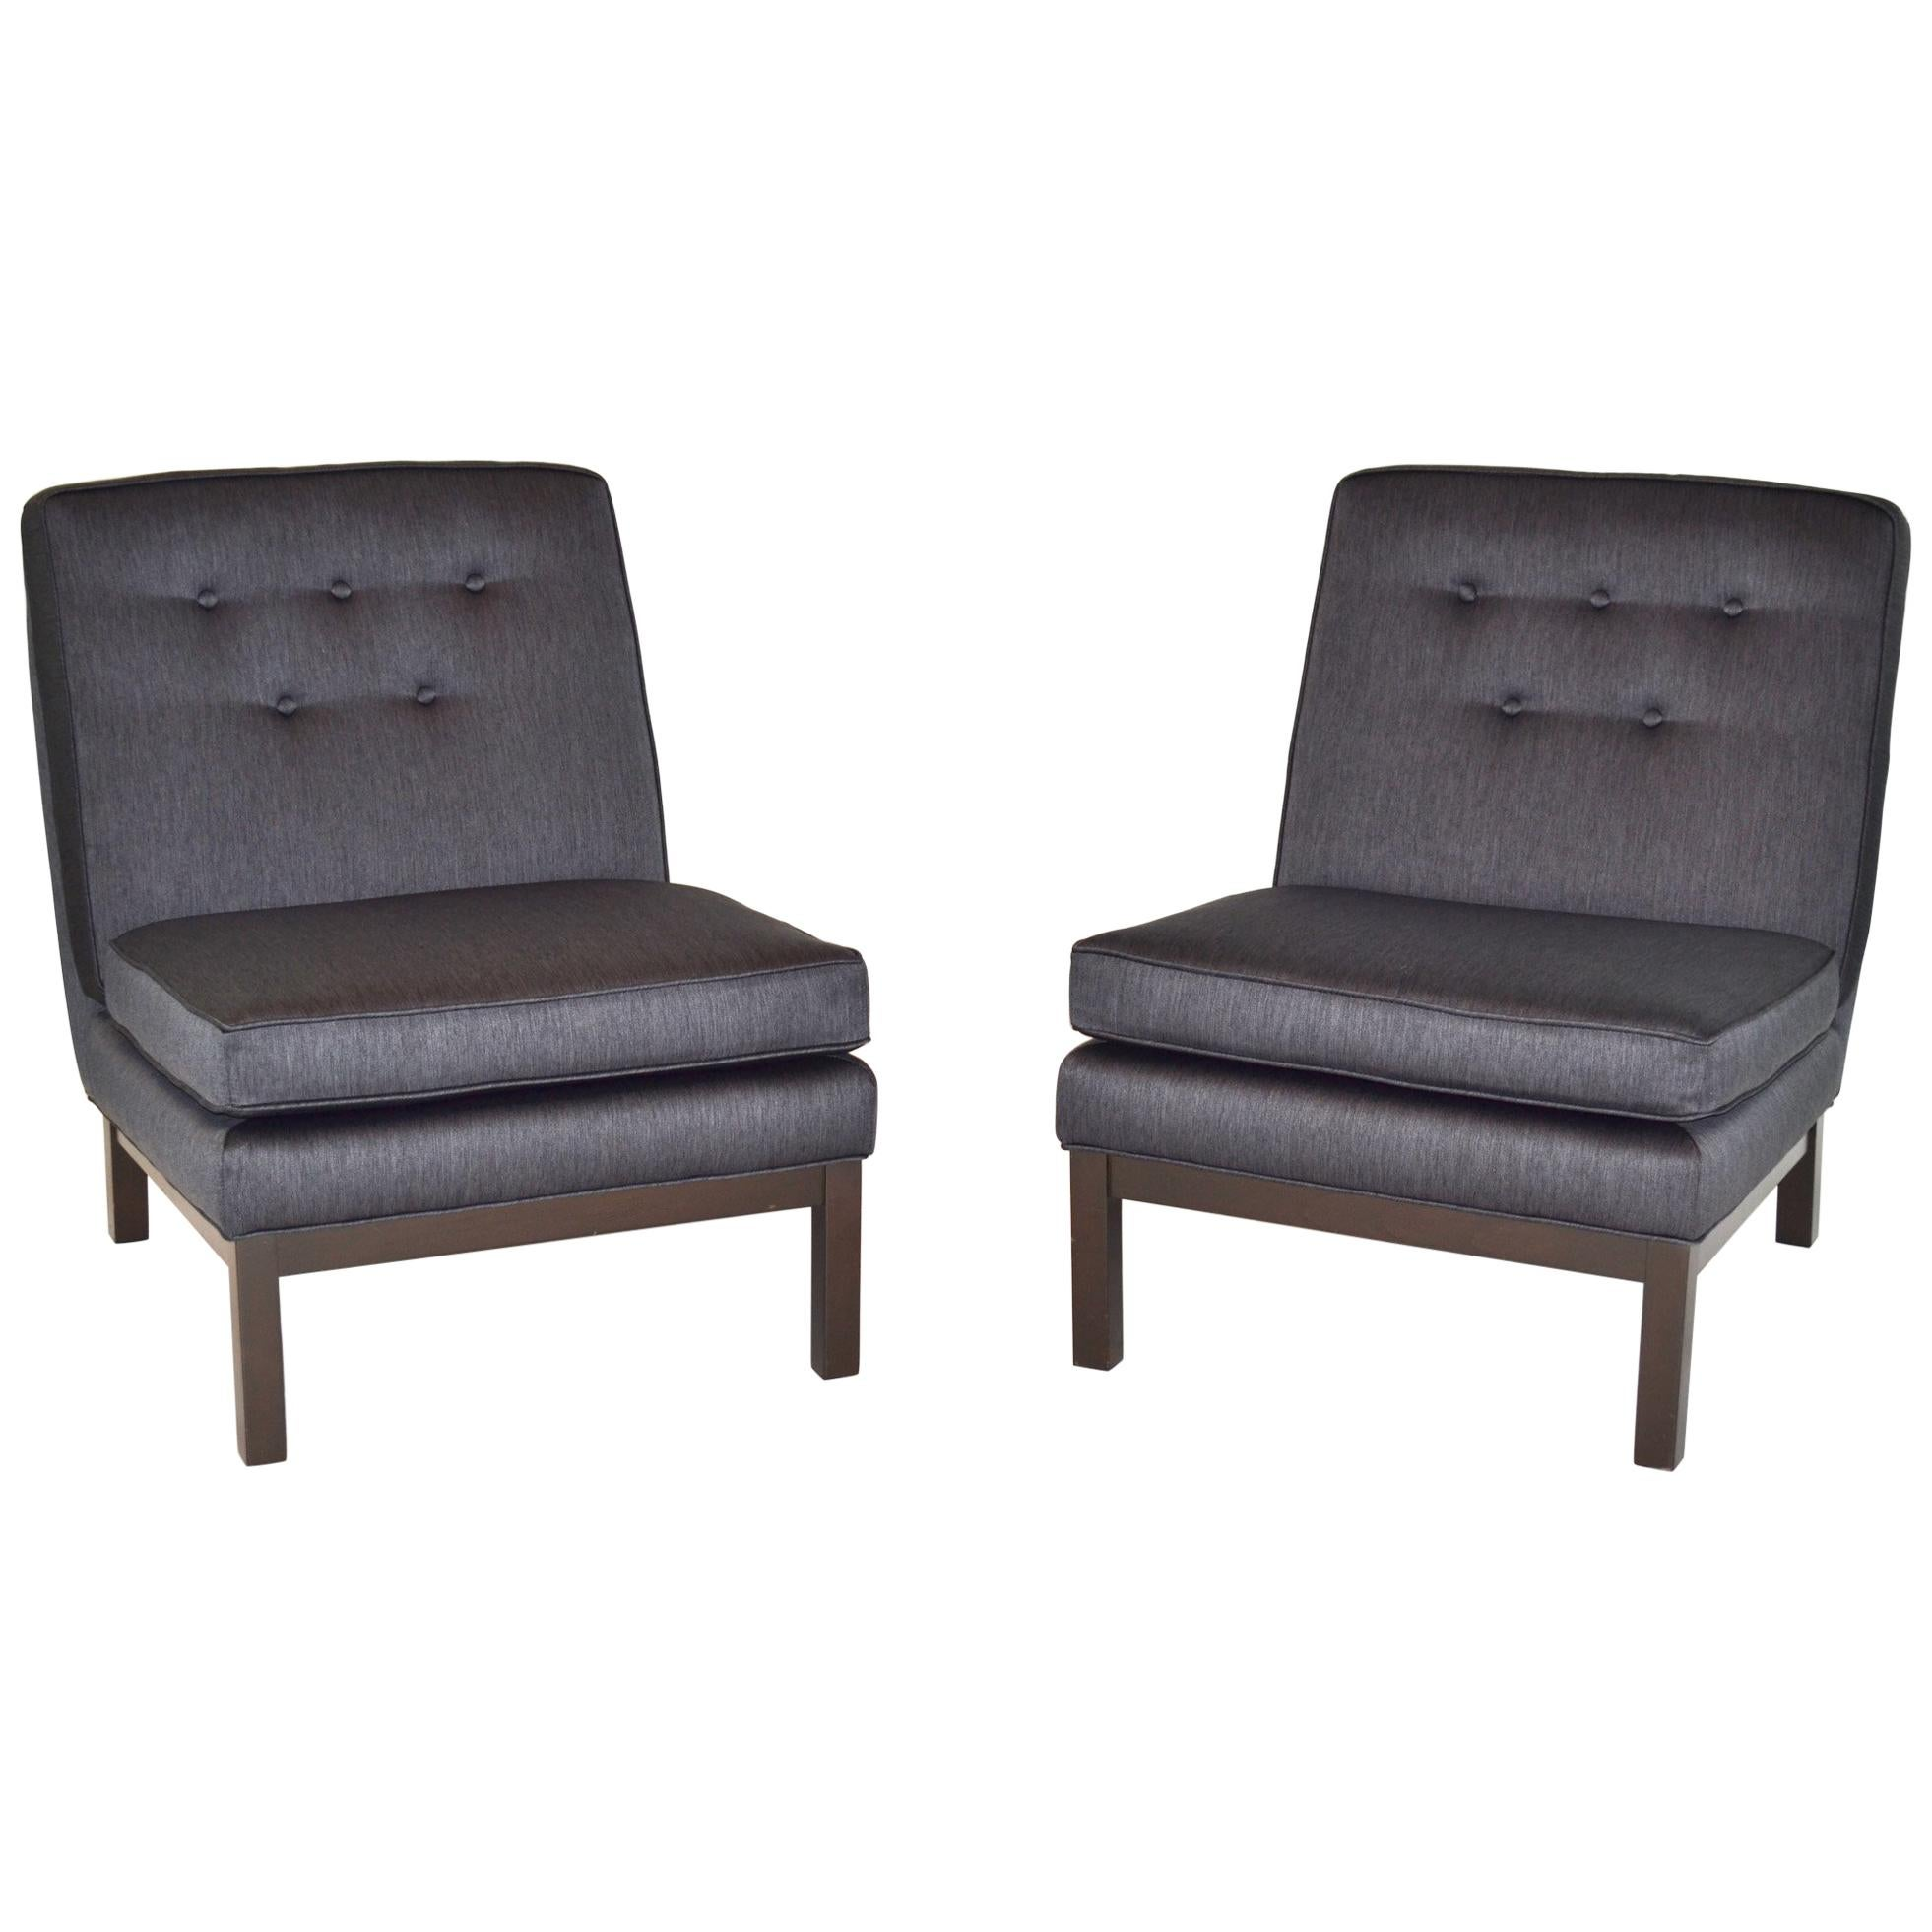 Pair of Slipper Lounge Chairs After Harvey Probber Mid-century